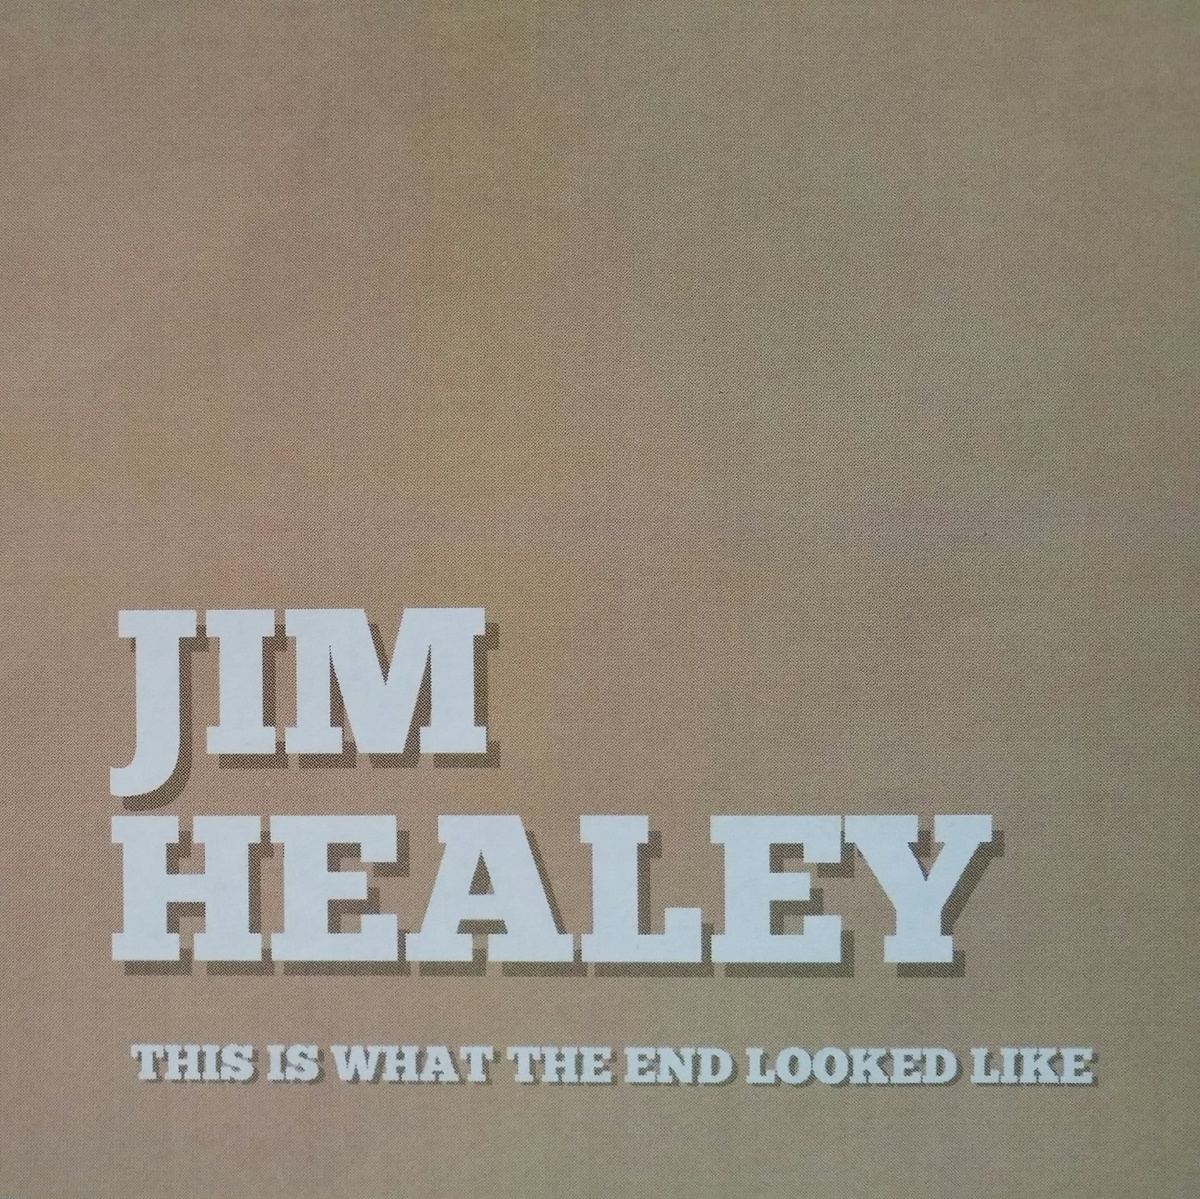 jim healey this is what the end looked like